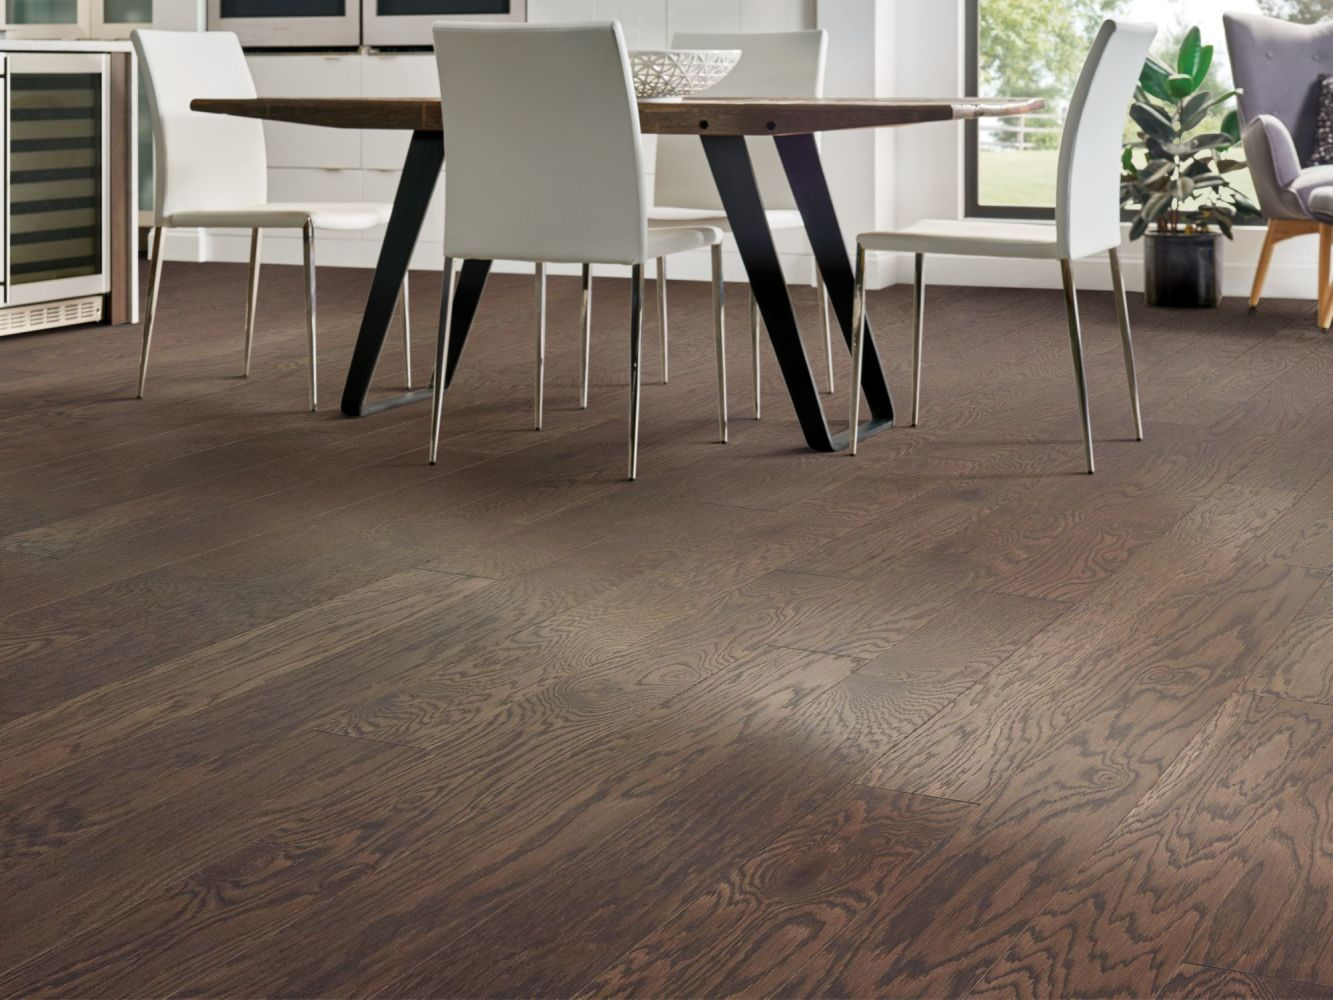 Shaw Floors Home Fn Gold Hardwood Pillar Oak Shale 07051_HW705